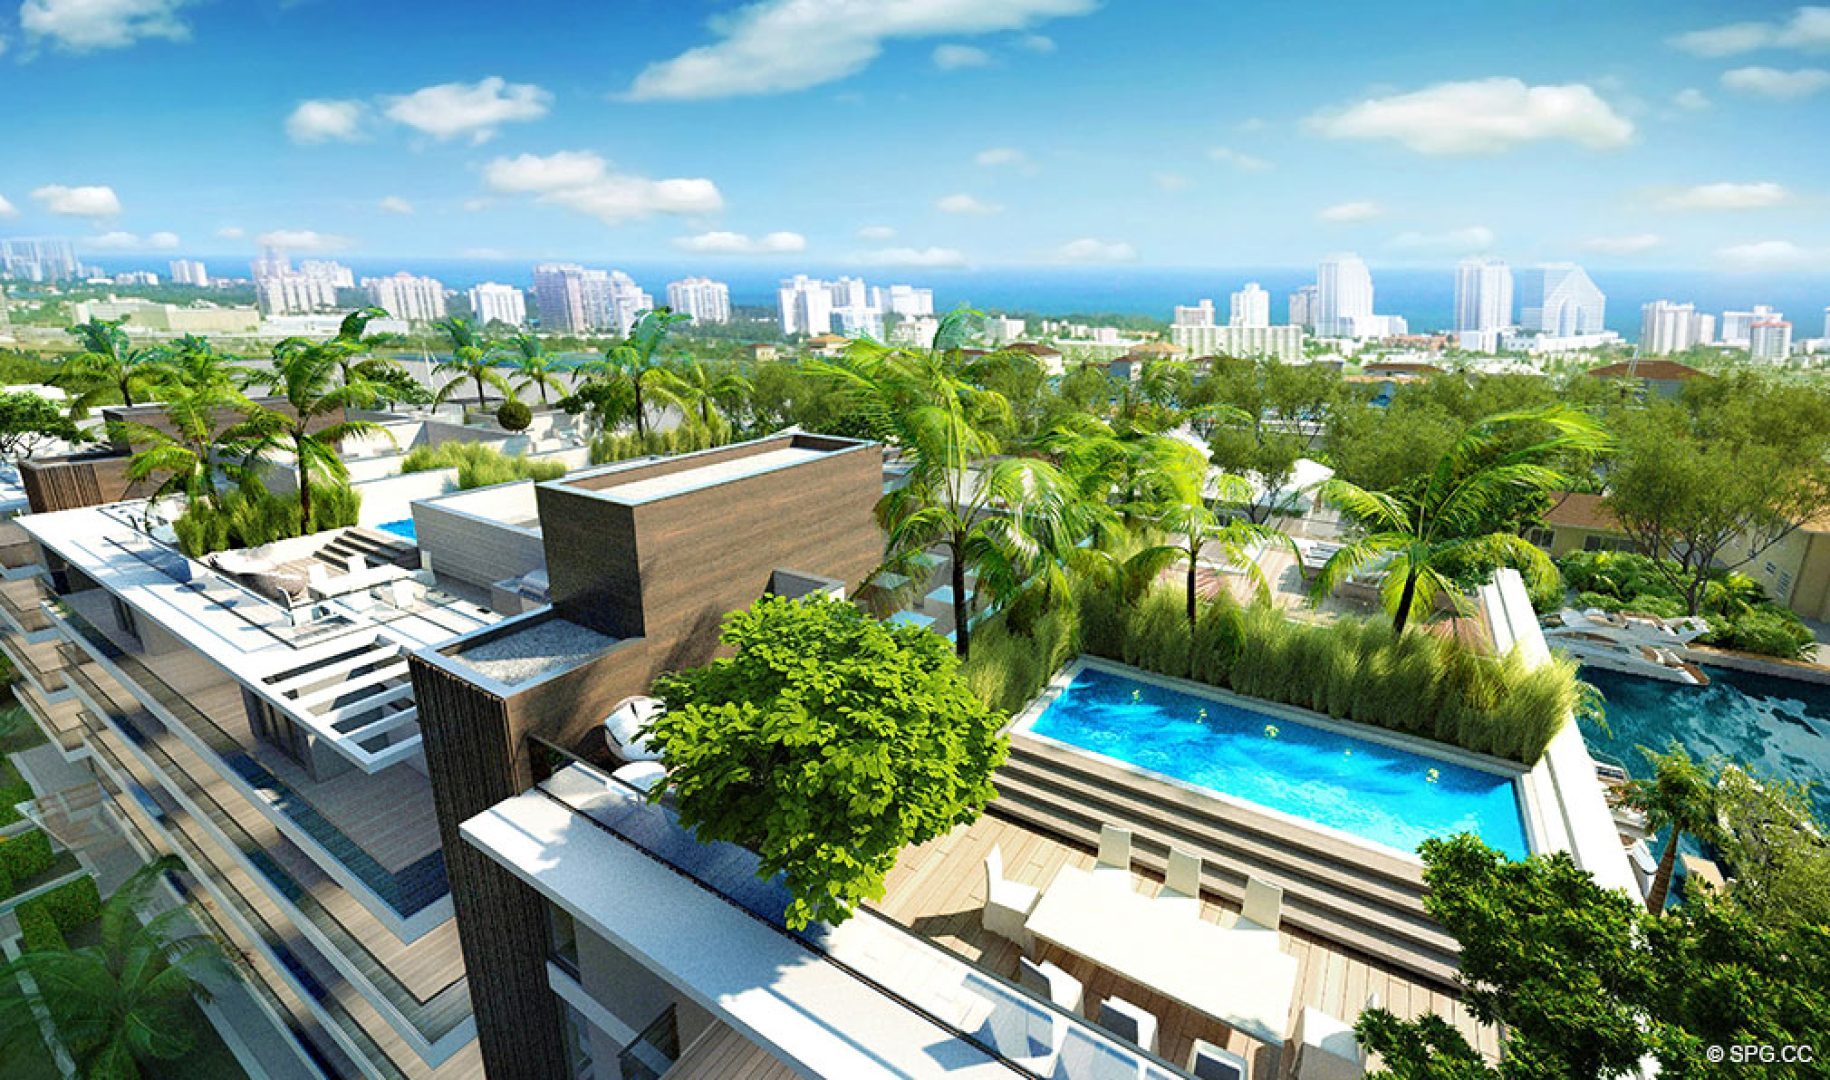 Amazing Roof Terrace at AquaLuna Las Olas, Luxury Waterfront Condos in Fort Lauderdale, Florida 33301